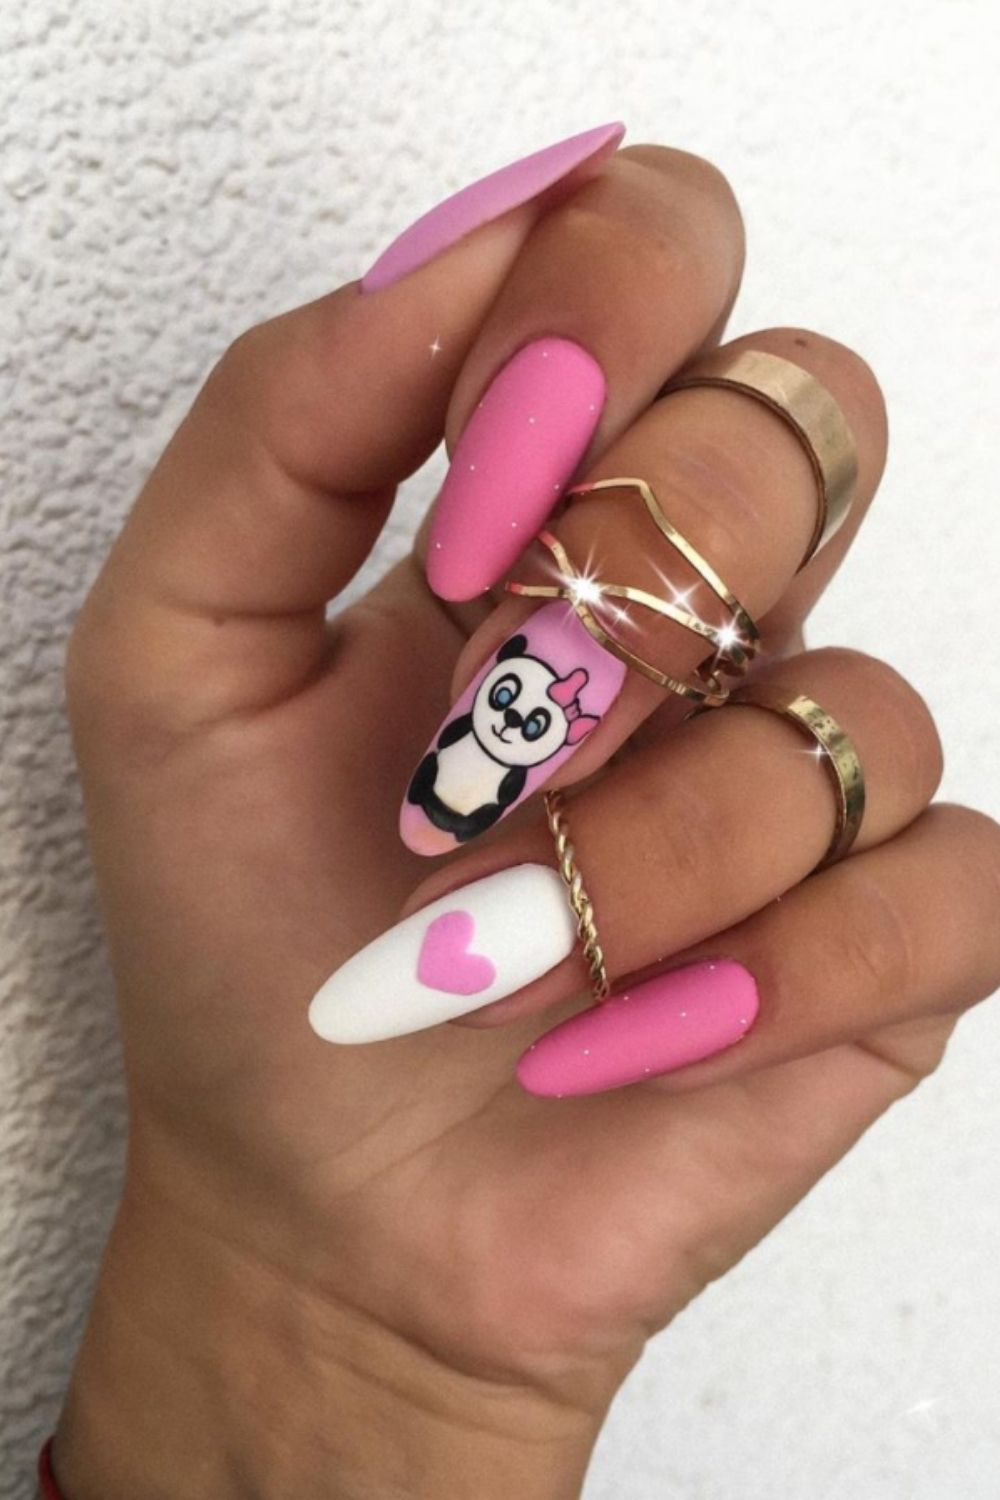 Almond shaped nails 2021 trendy summer